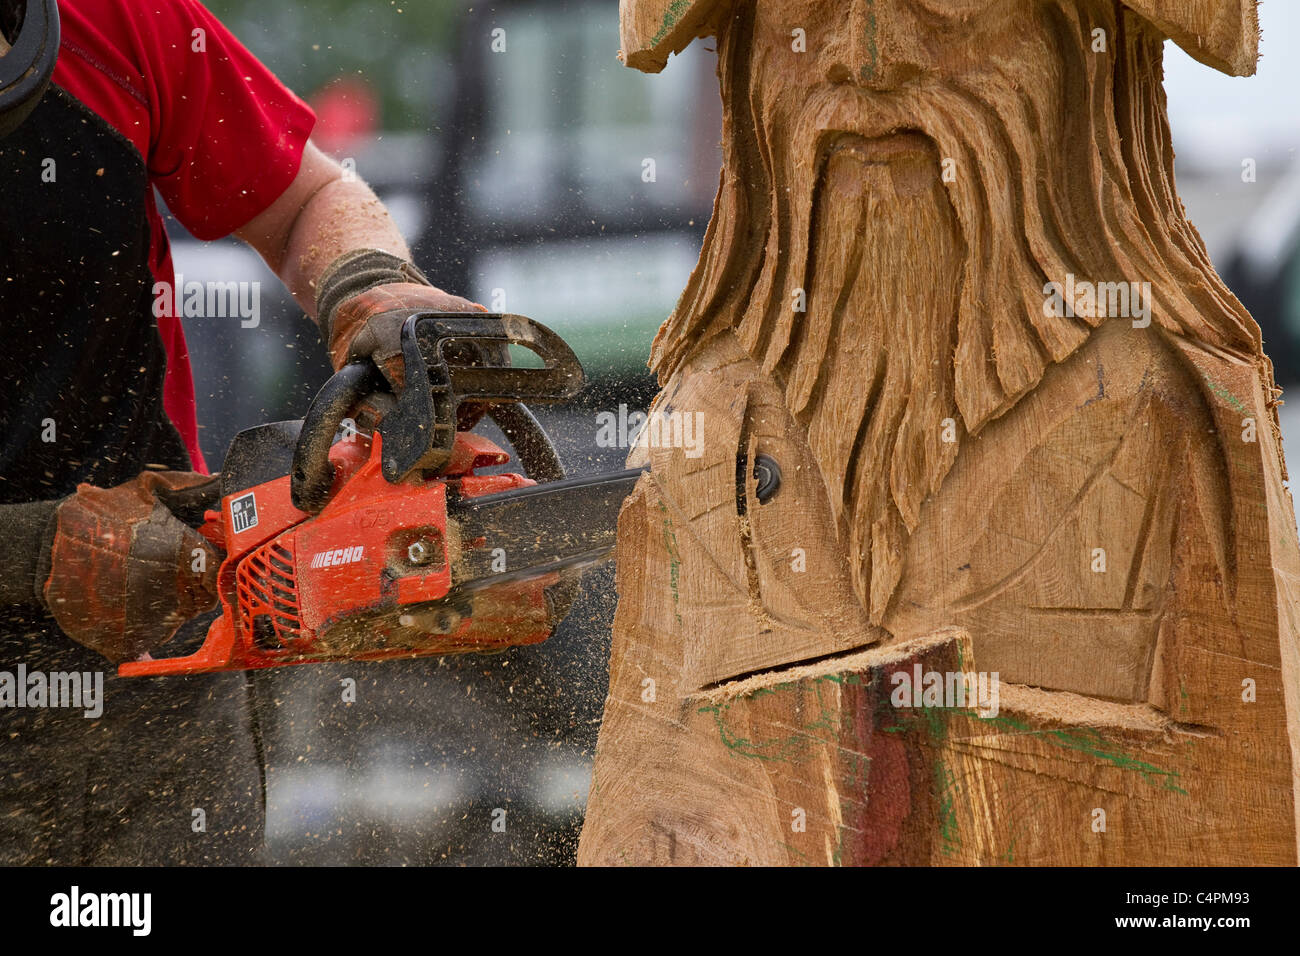 Events and Competitors at the Cheshire Game & Country Fair Show, Knutsford, UK. Wood sculpture, sawdust, sculptor, Stock Photo